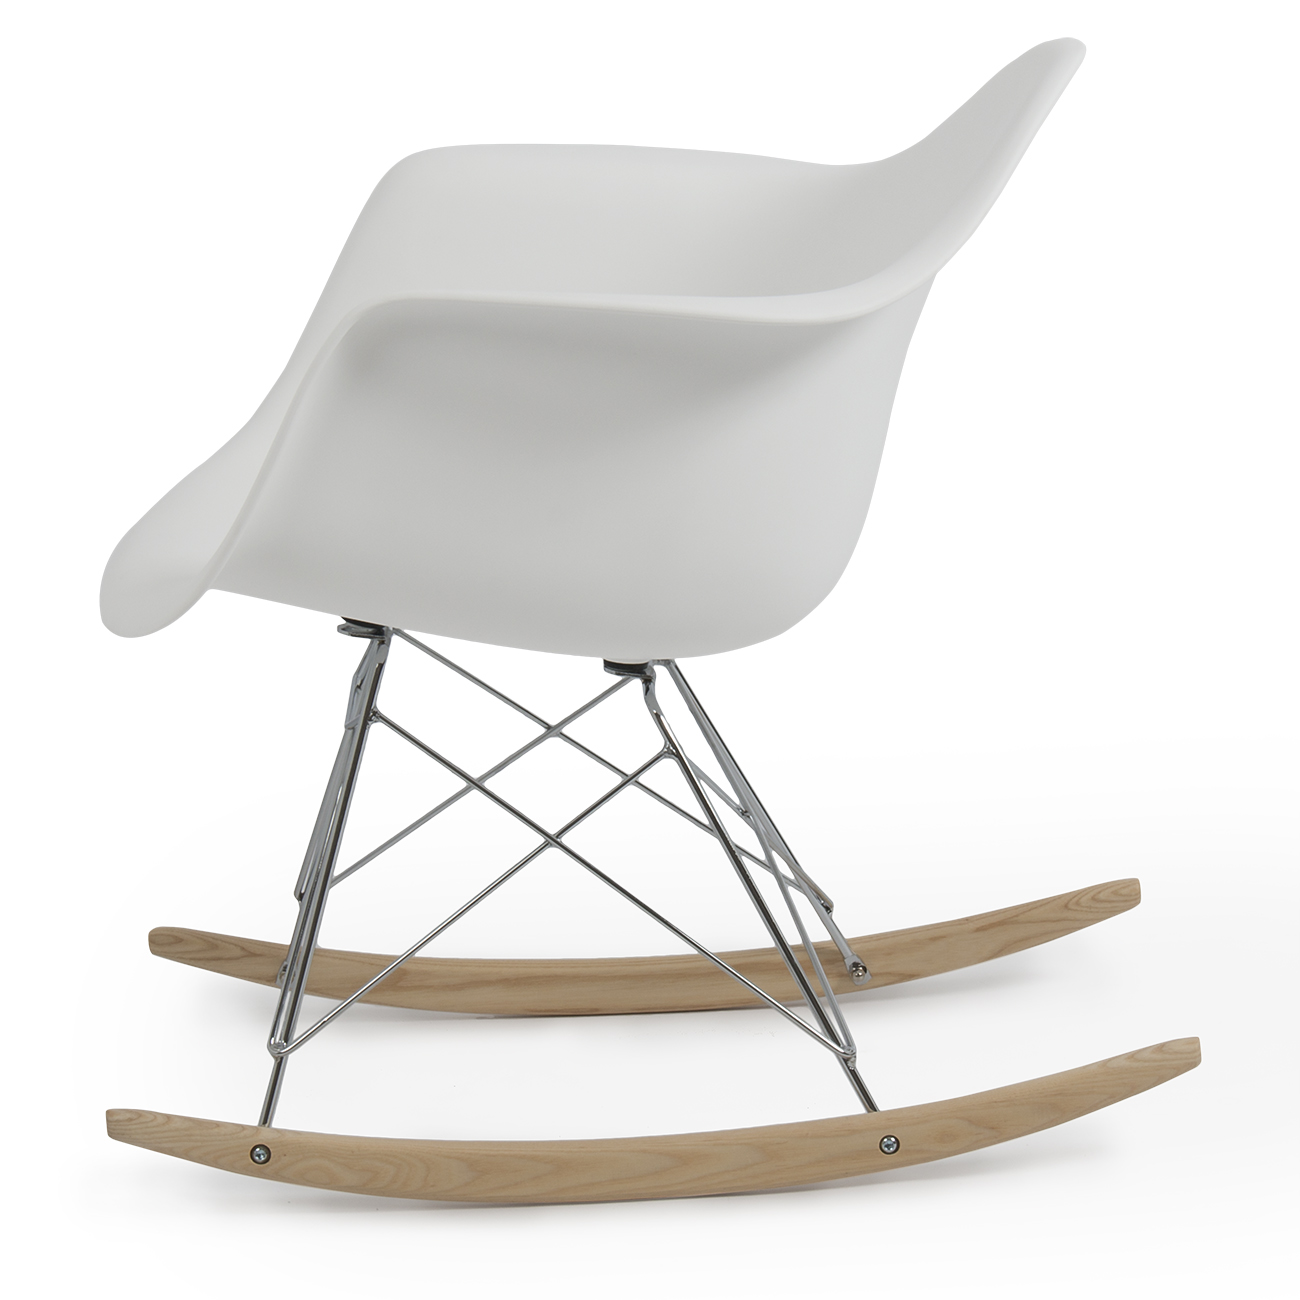 Details about NEW Eames Rocker Rocking Indoor Wood Chair RAR DSW Style ...